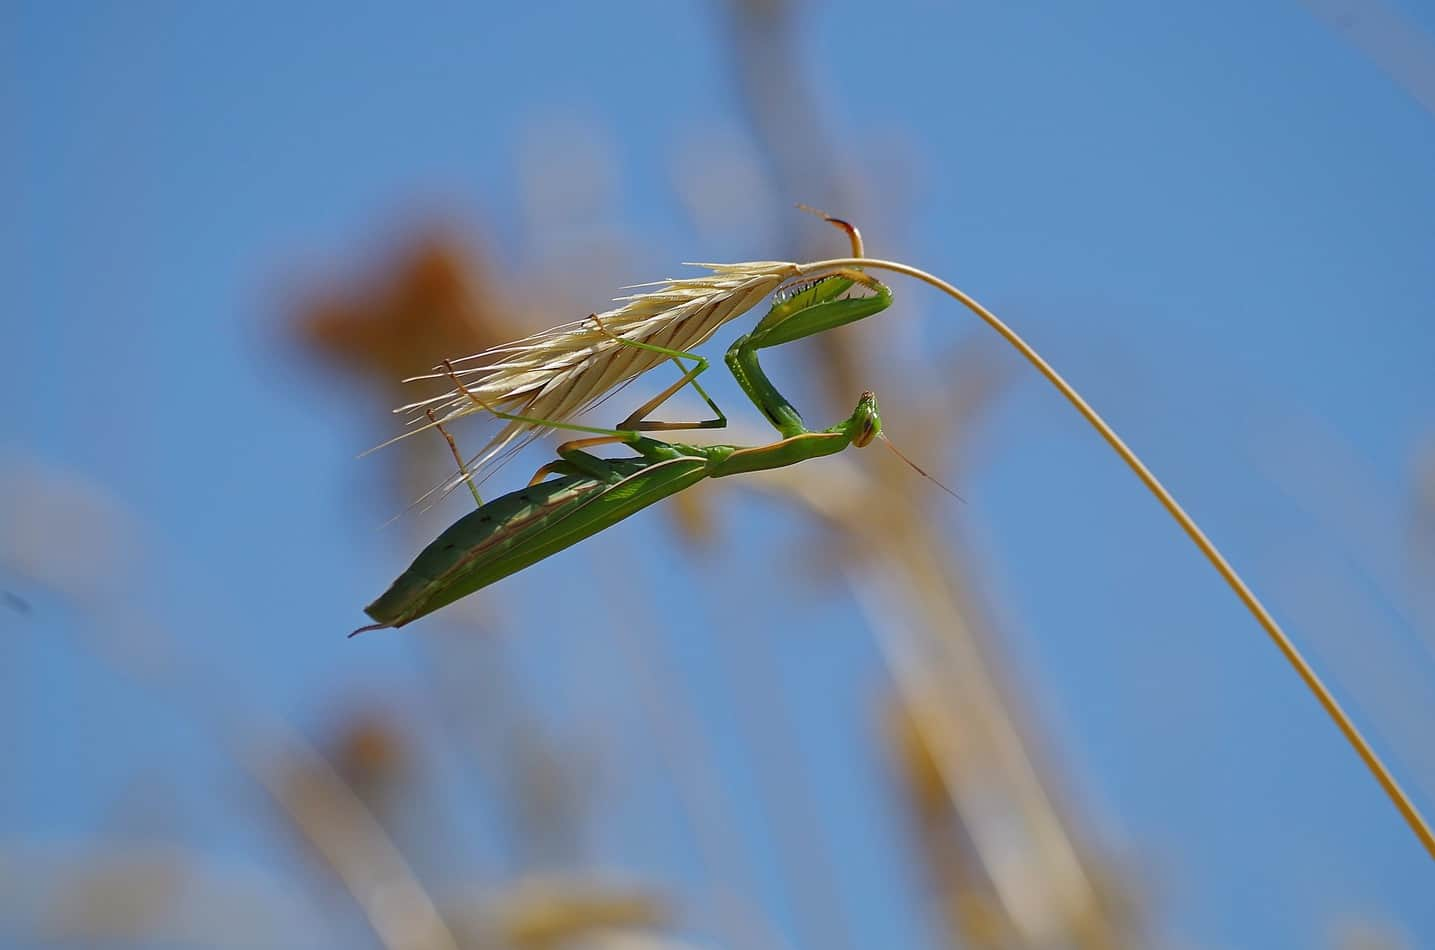 Is The Praying Mantis Good For My Garden